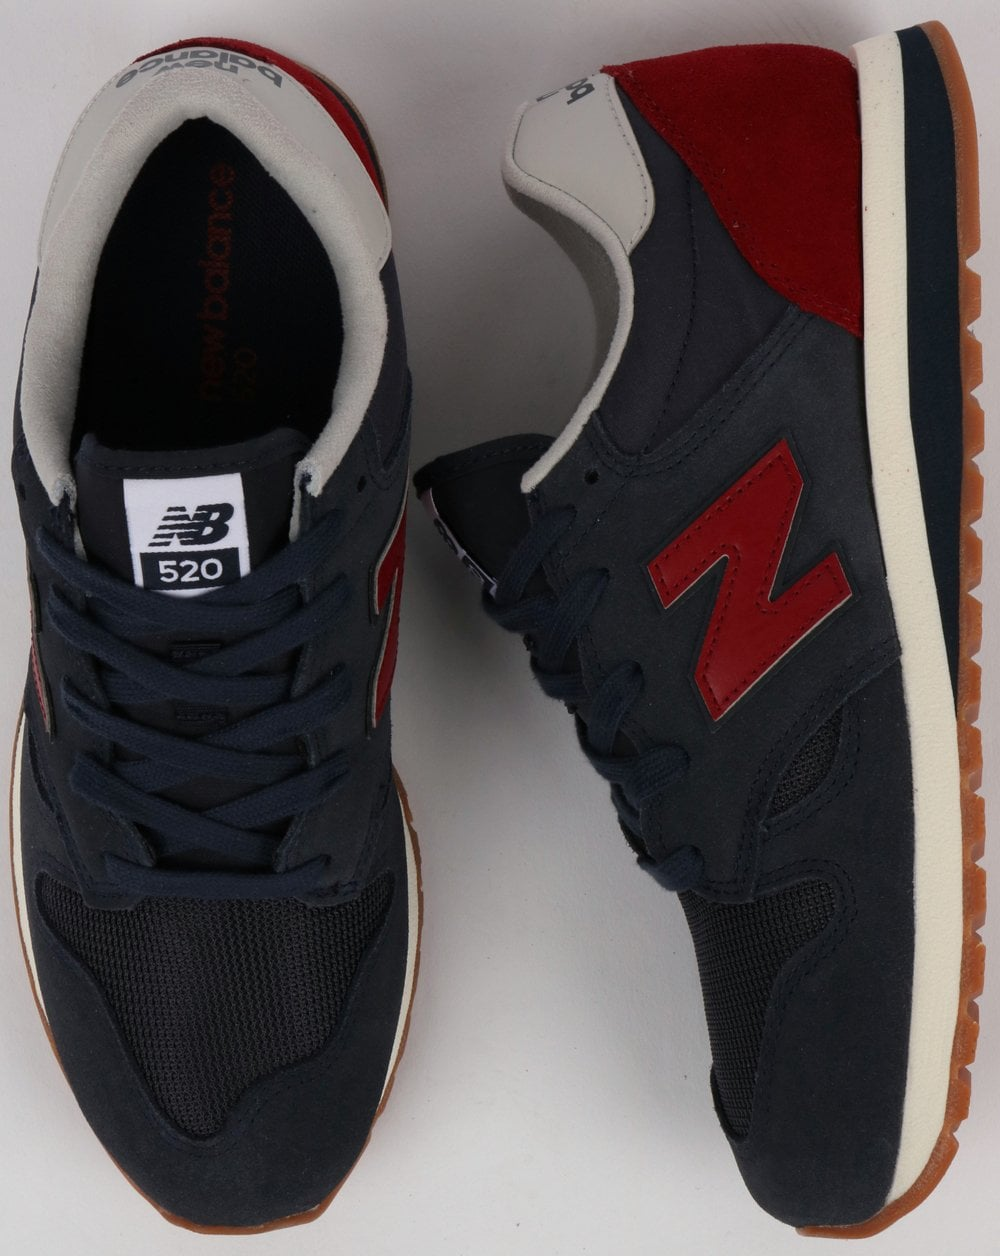 48427b476683b New Balance 520 Trainers Outerspace/Scarlet | 80s casual classics